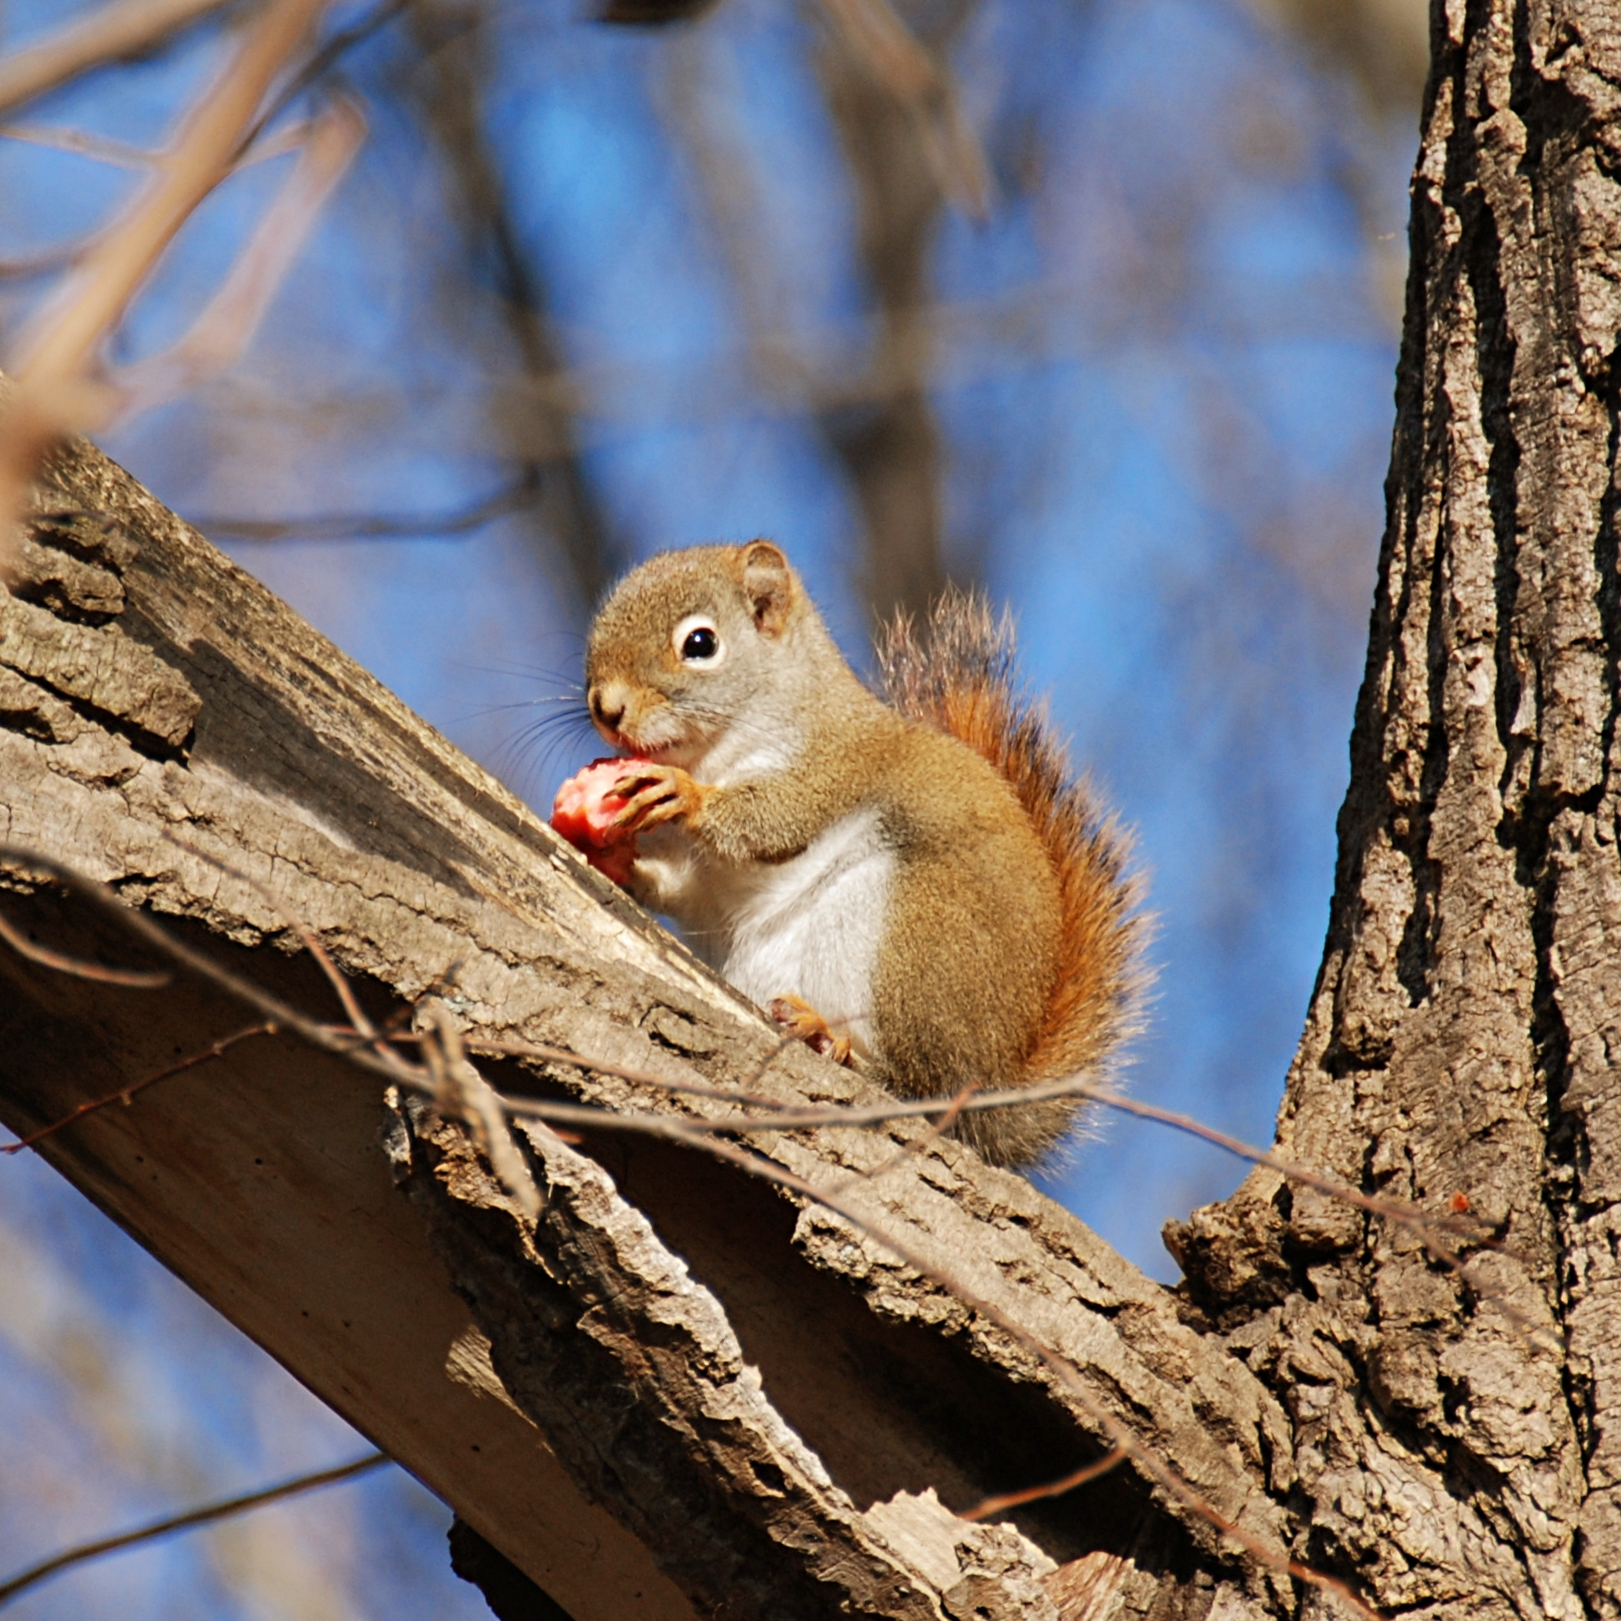 Small Squirrel Standing on Green Branch | Photo and Desktop Wallpaper